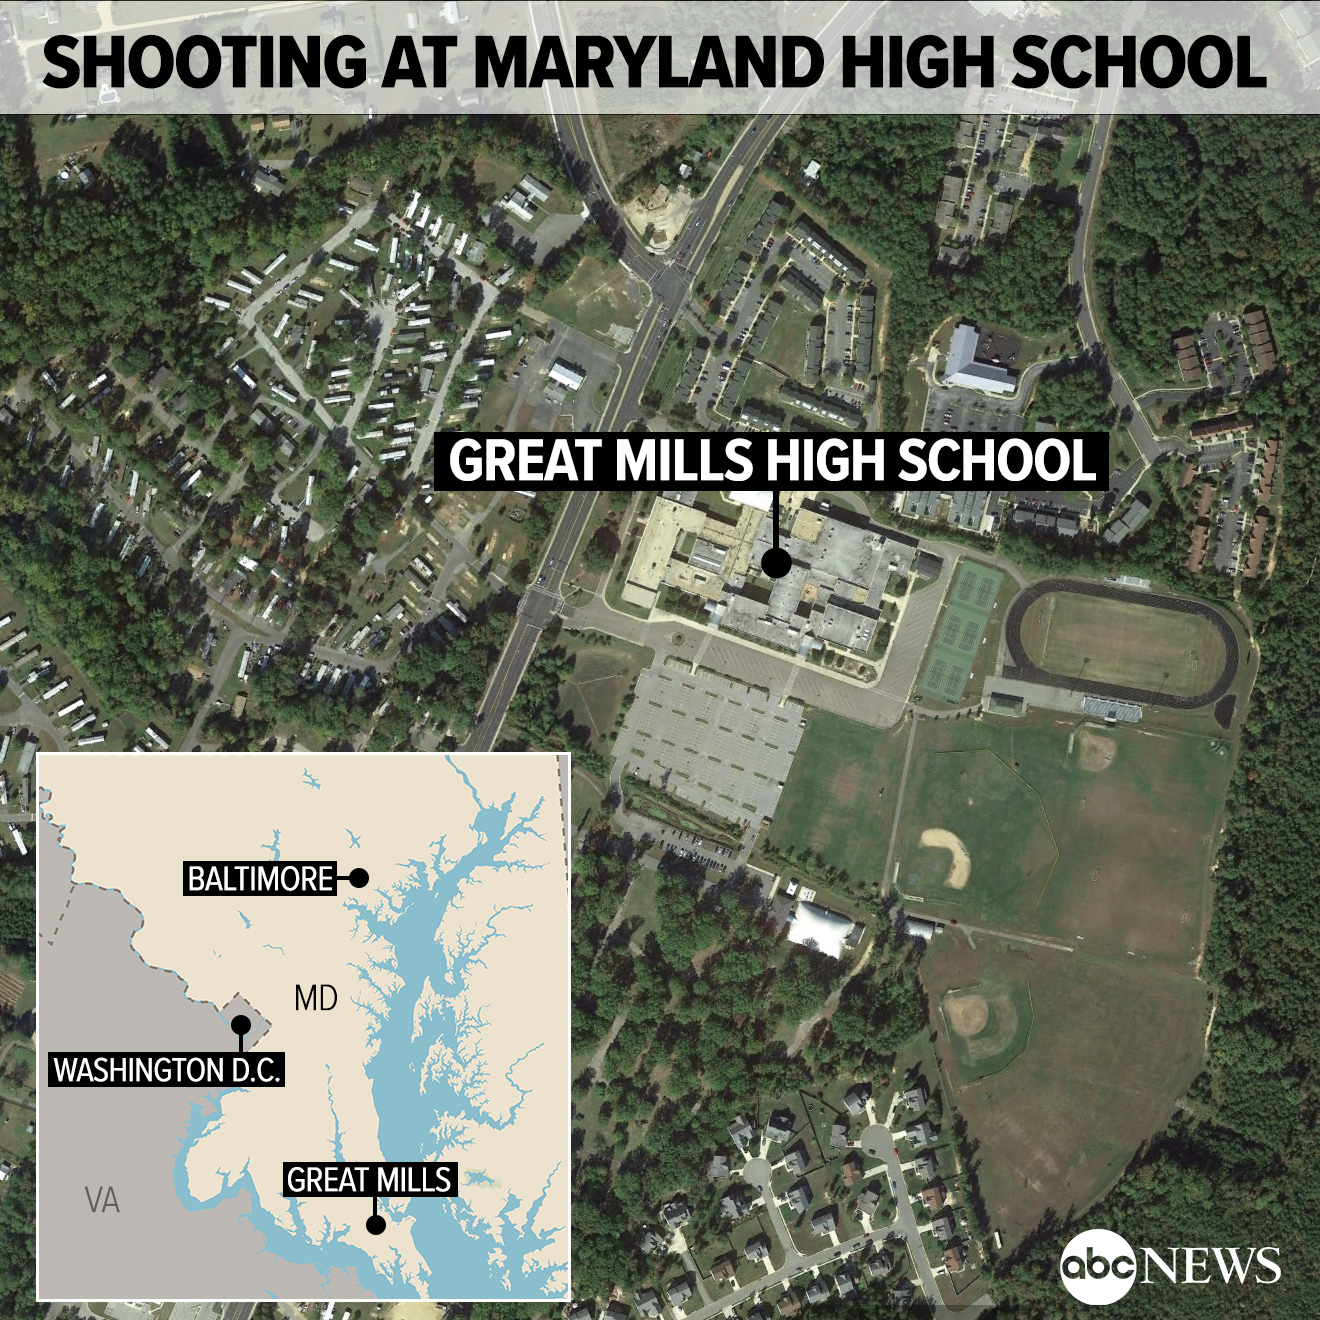 Teen remains in critical condition as authorities investigate Md. school shooting